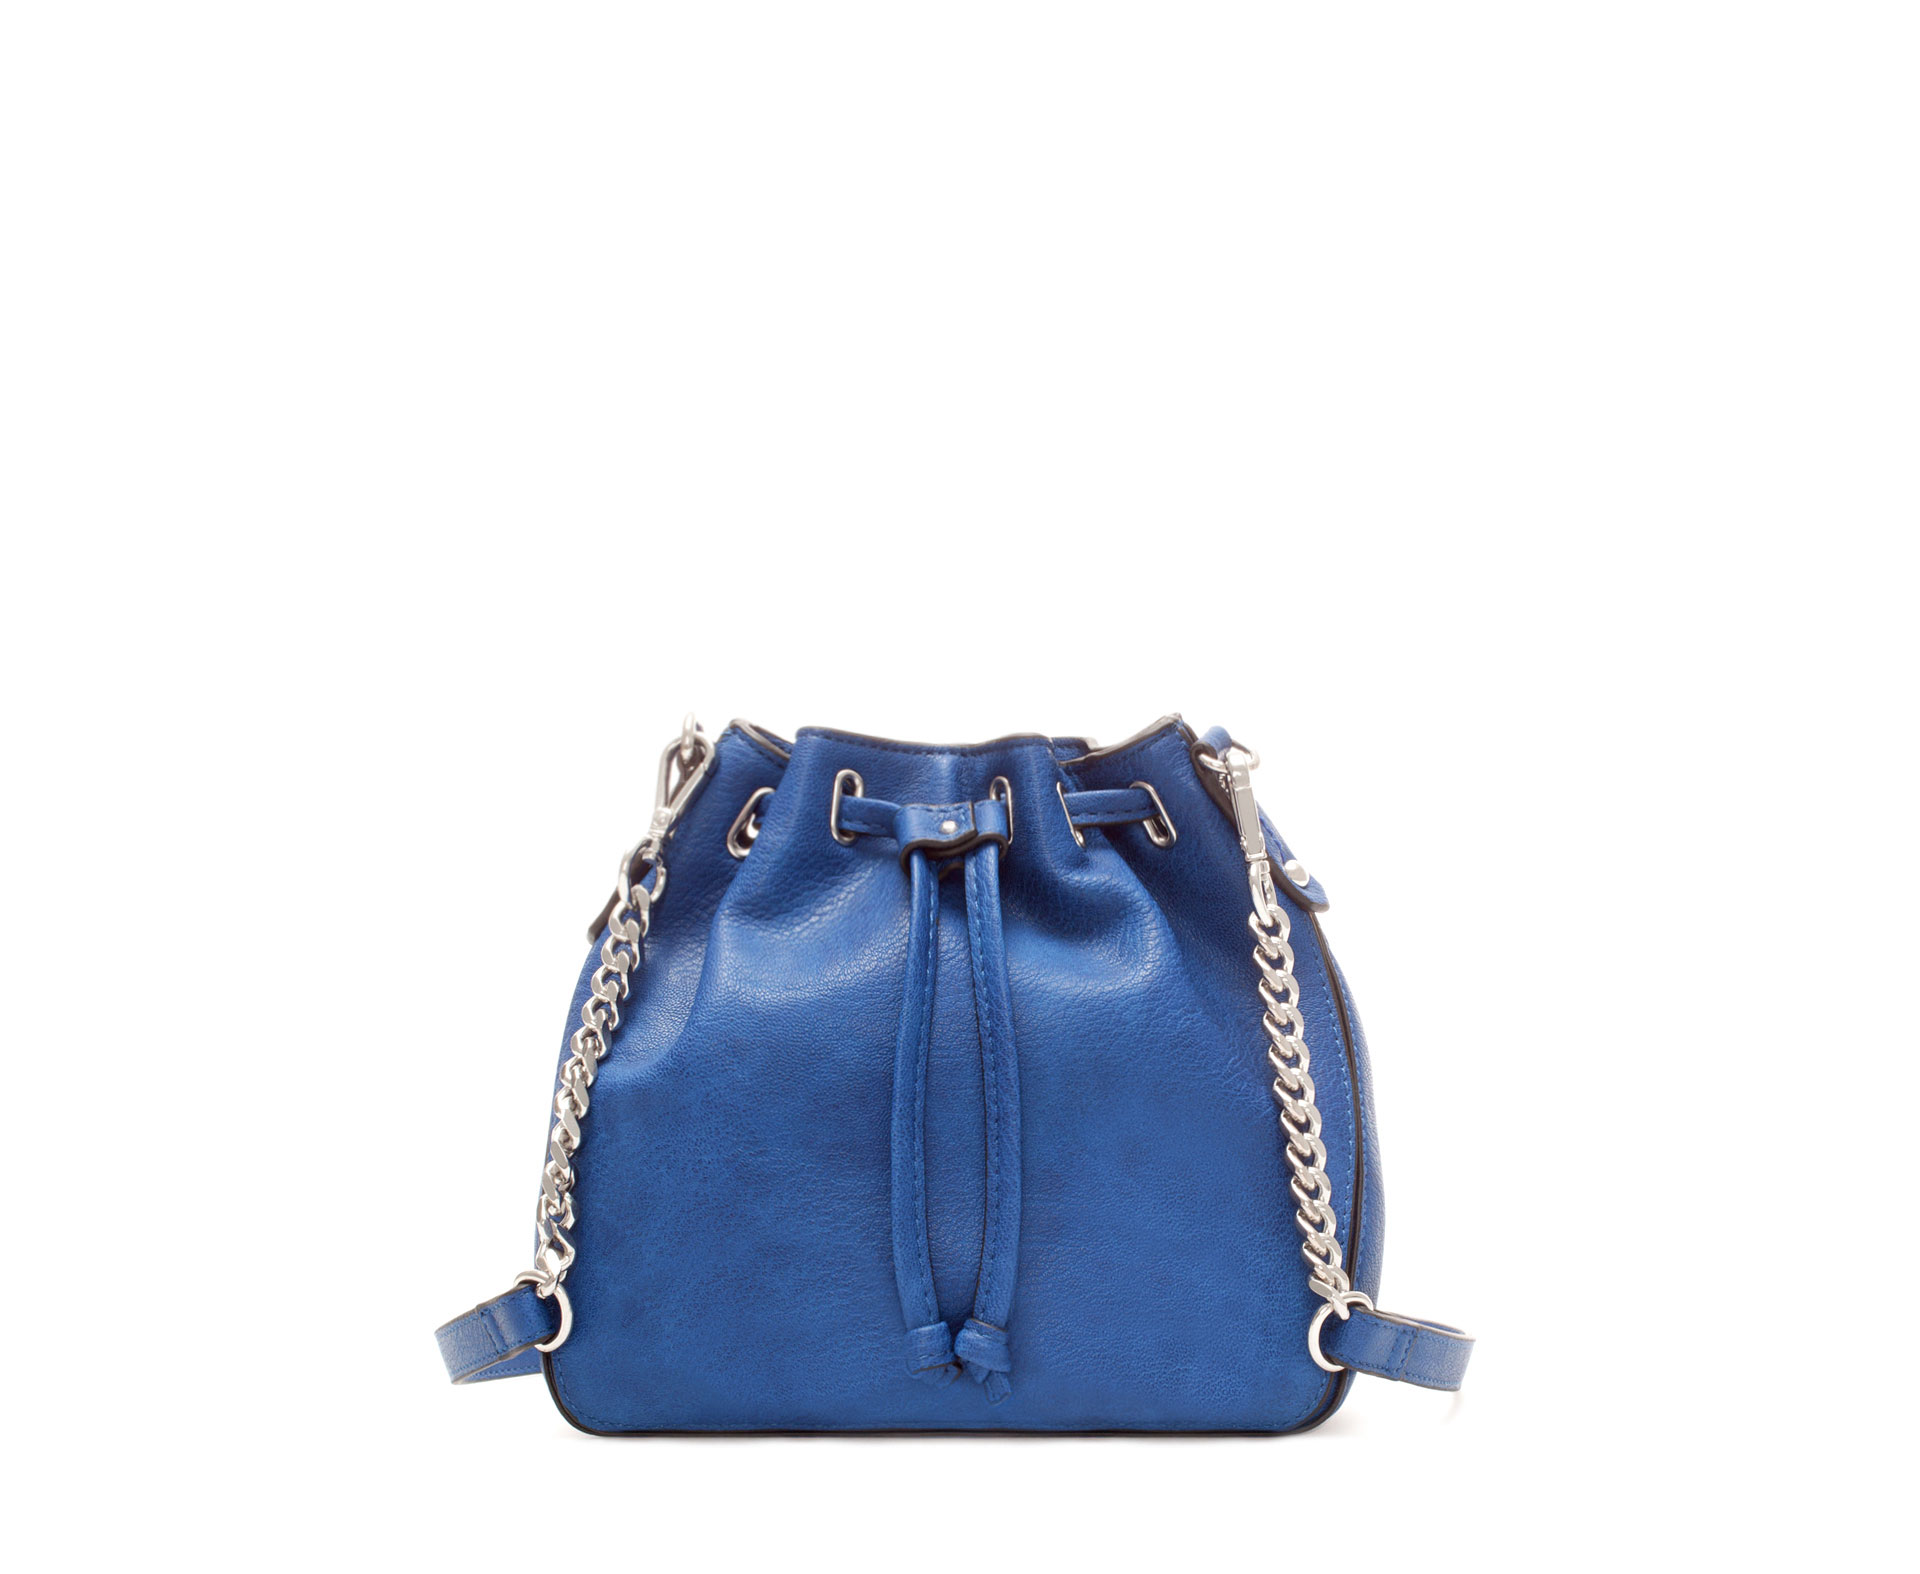 Zara Mini Bucket Bag in Blue | Lyst